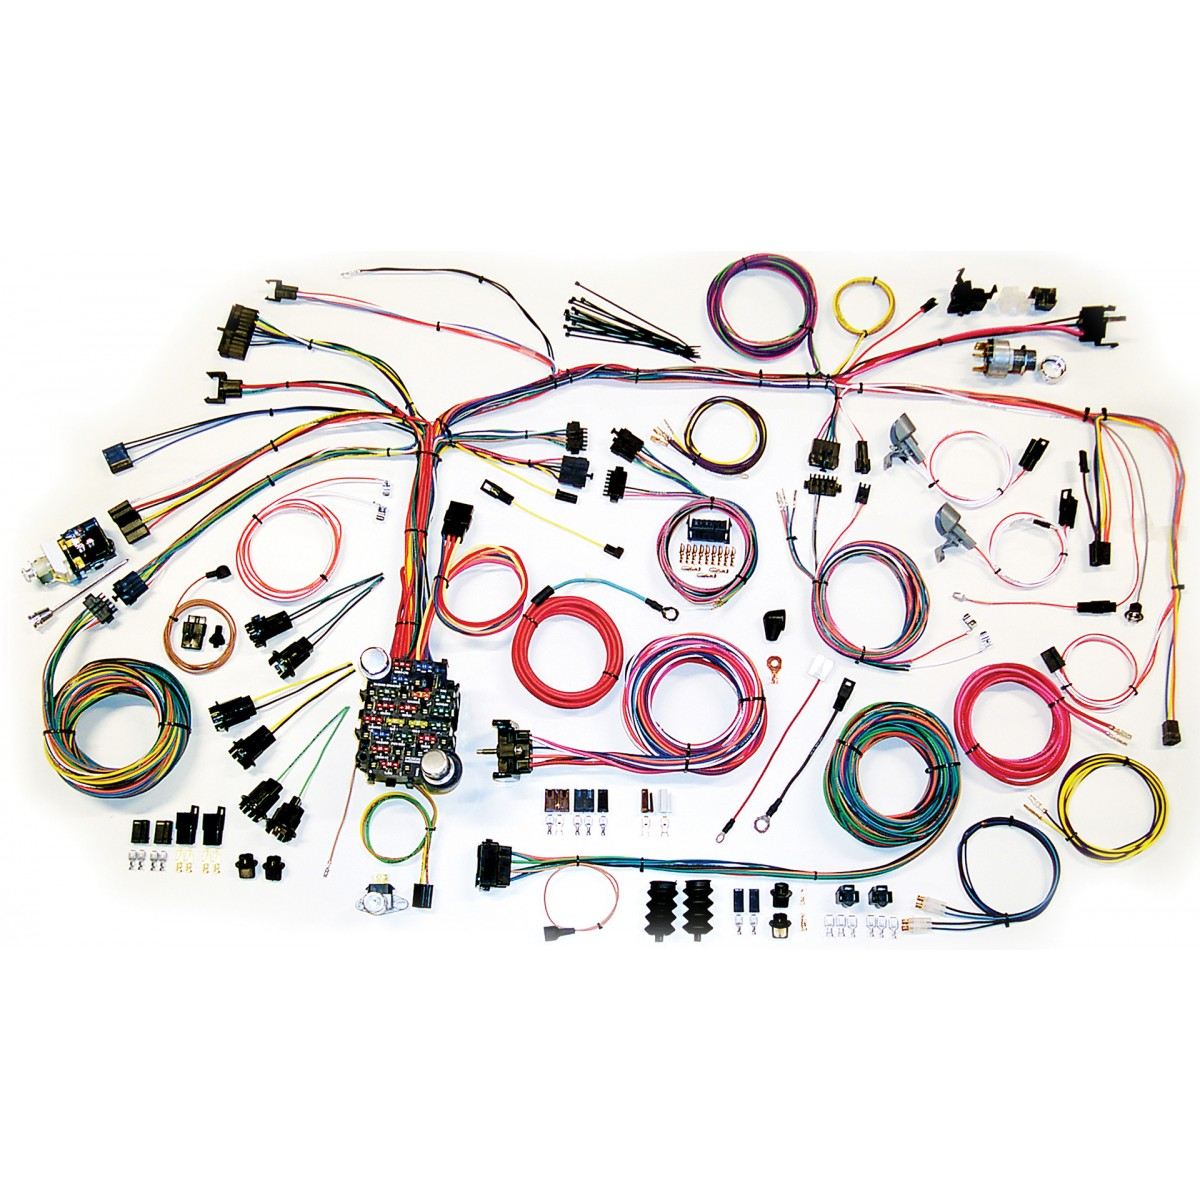 1967 1968 camaro wiring harness complete wiring harness kit 1967 rh code510 com 68 camaro painless wiring harness diagram 68 camaro engine wiring harness